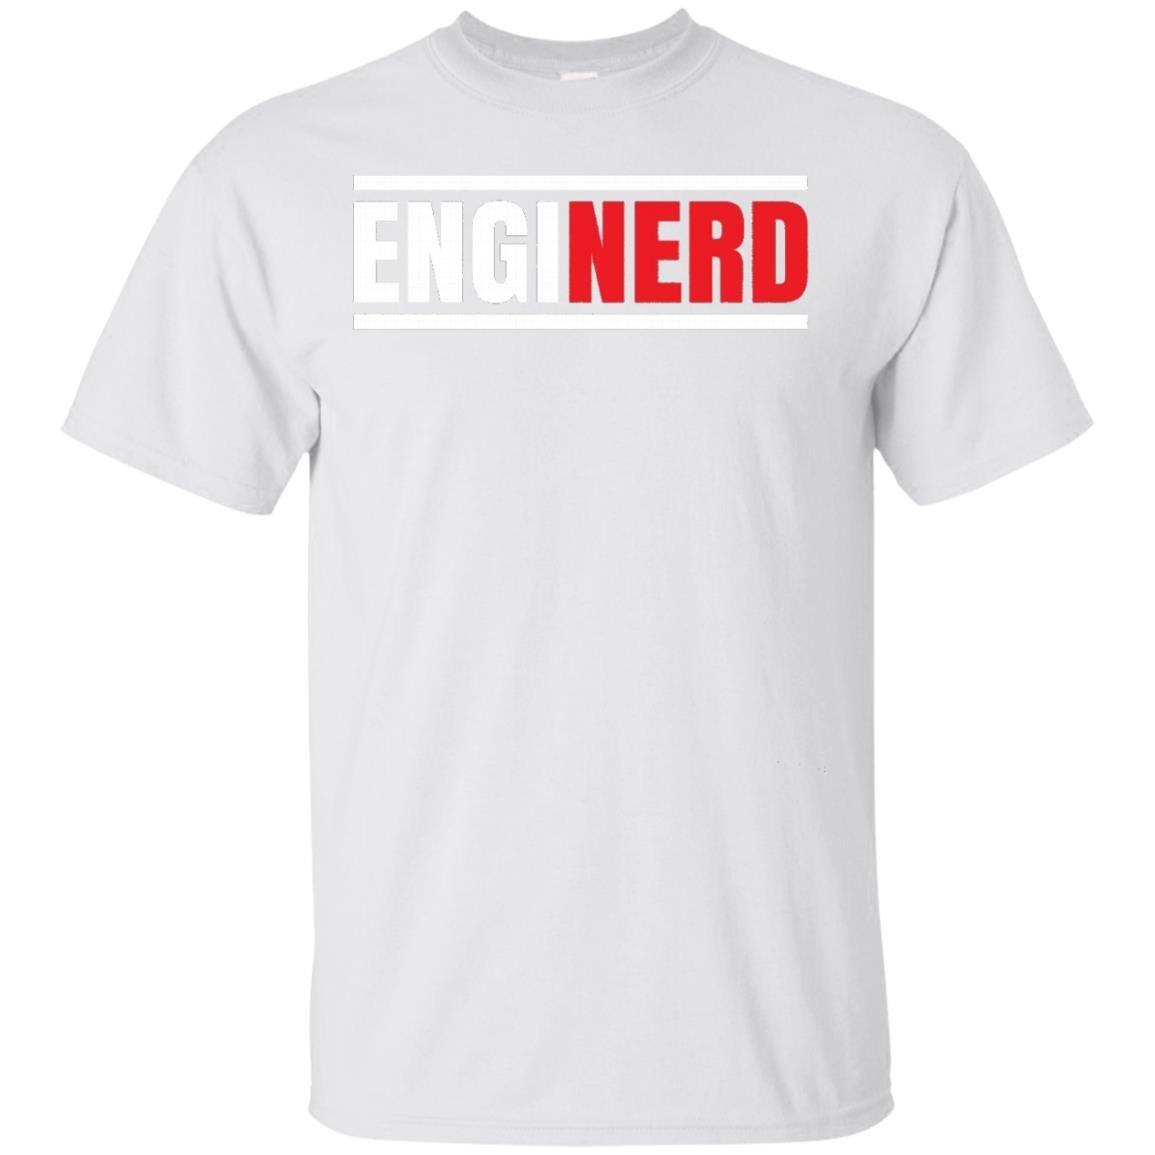 Enginerd. Funny T-shirt – T-Shirt